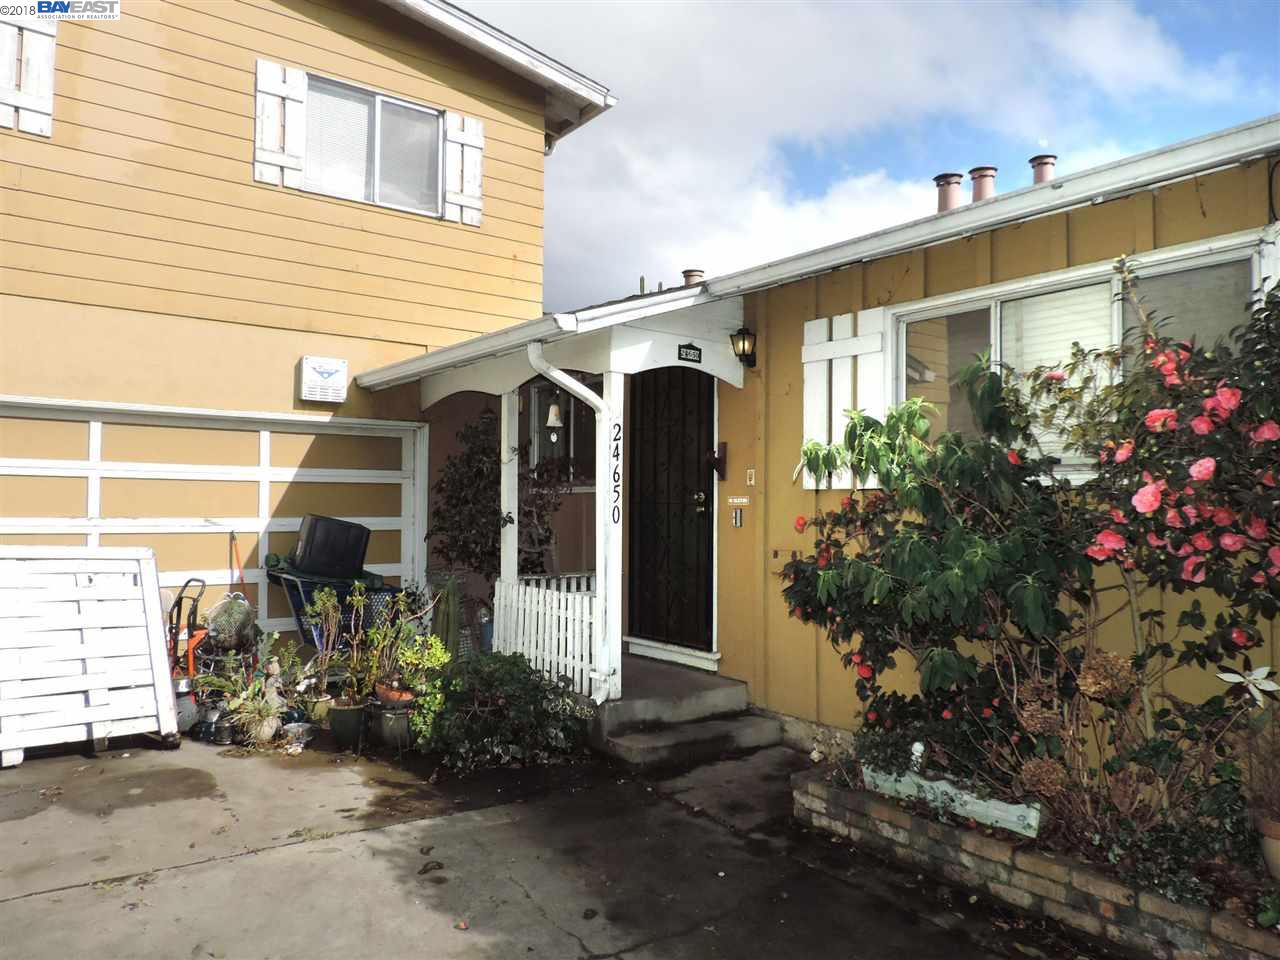 Additional photo for property listing at 24650 Townsend Avenue 24650 Townsend Avenue Hayward, California 94544 United States